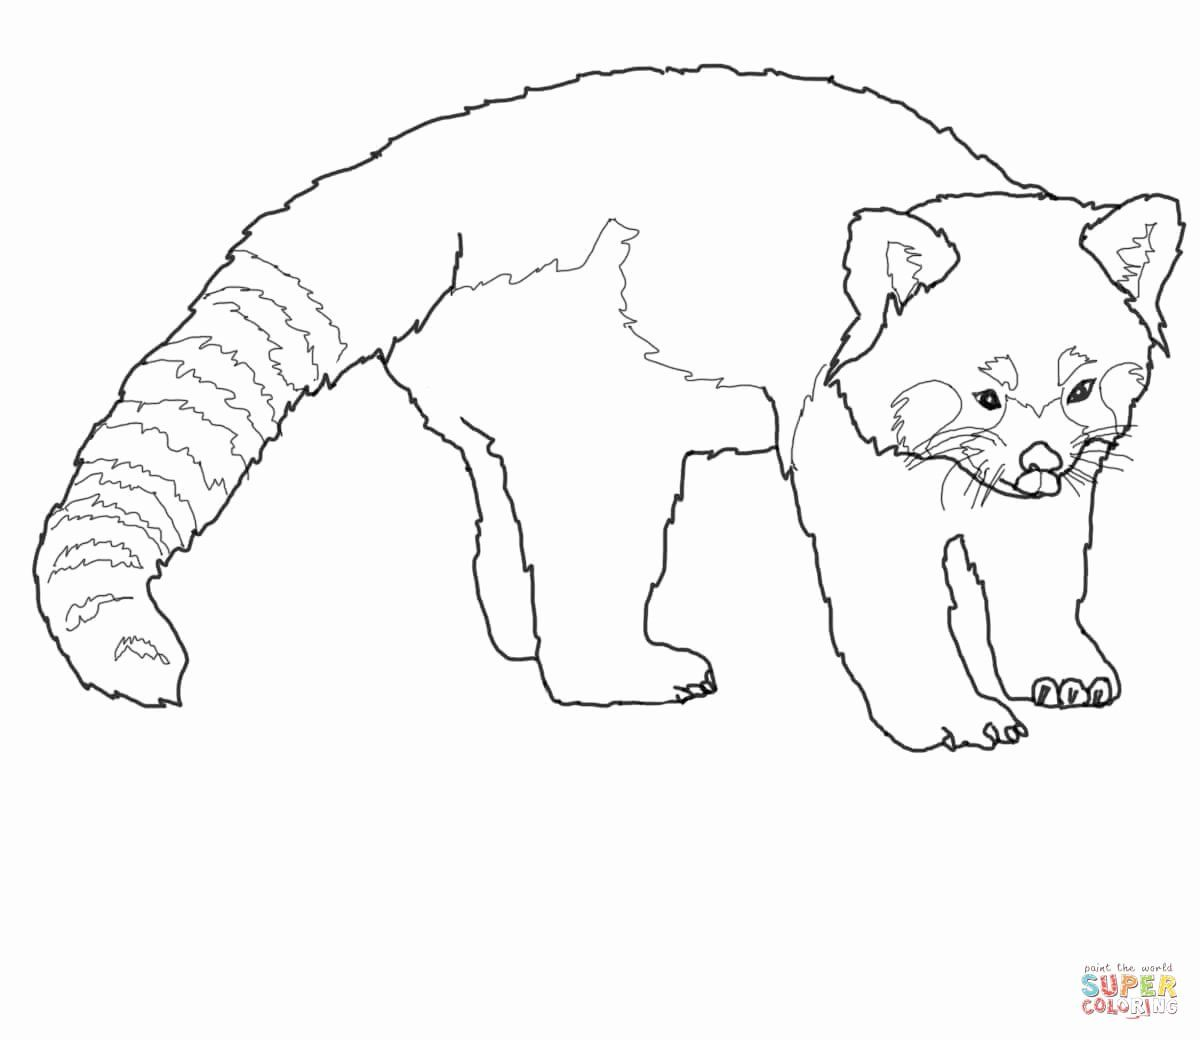 Red Panda Coloring Page Beautiful 301 Moved Permanently In 2020 Panda Coloring Pages Bear Coloring Pages Animal Coloring Pages